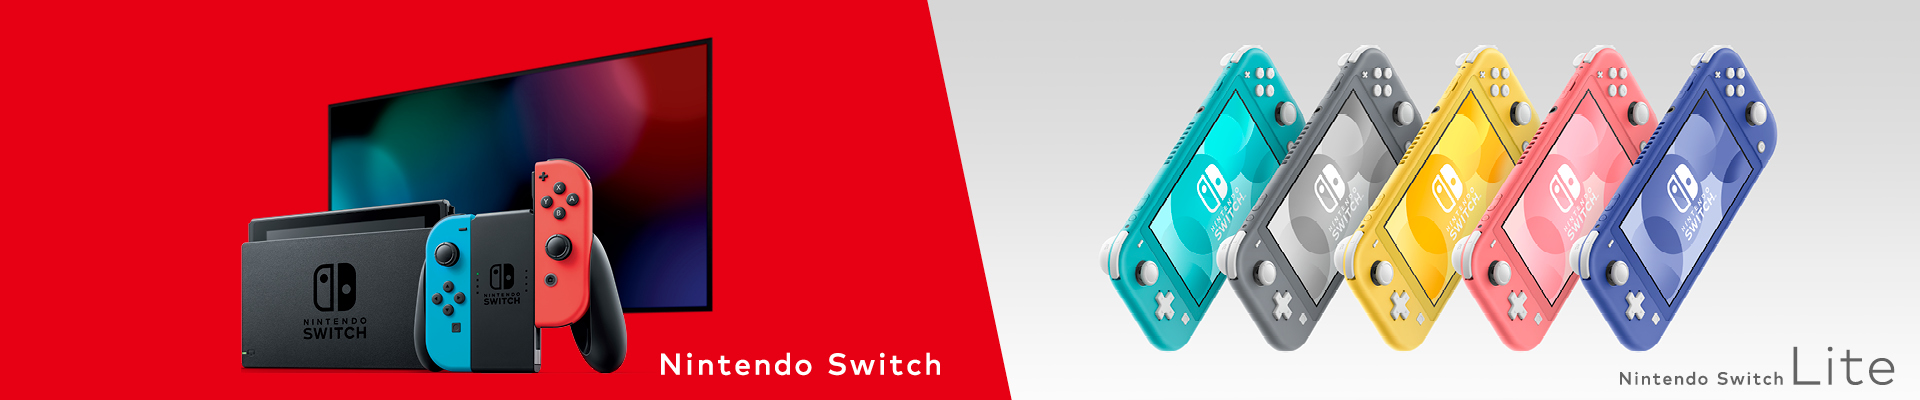 nintendo switch banner with lite